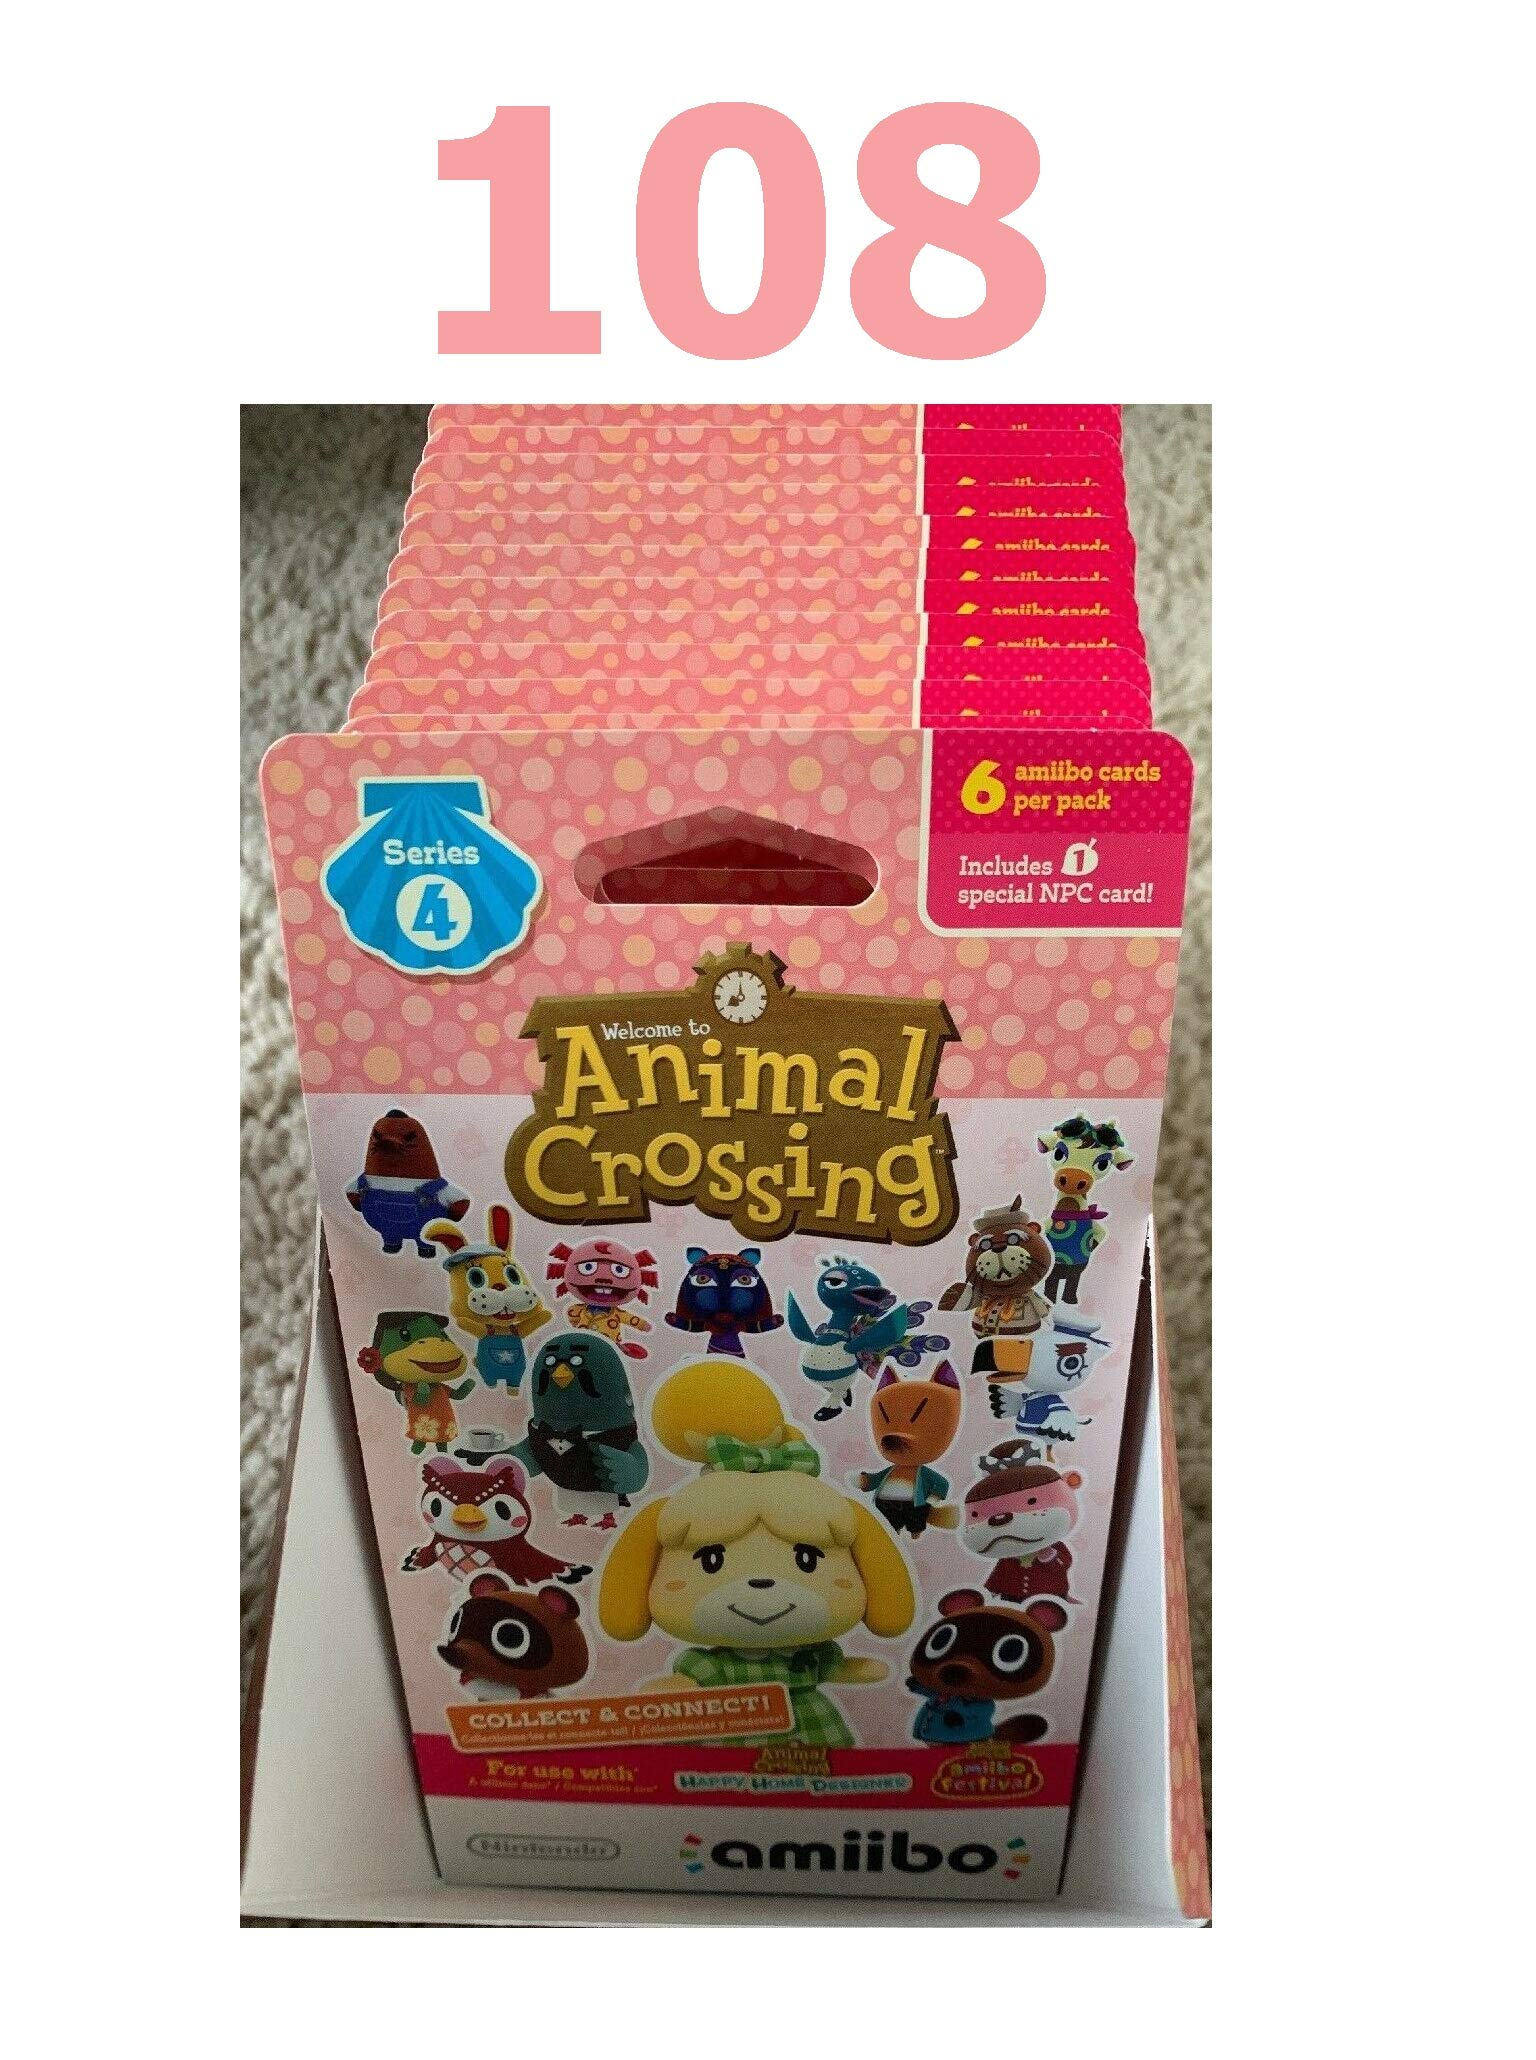 High Rated Animal Cards Series 4 Unopened Box 18x6 Cards = 108 Total Quick Arrive